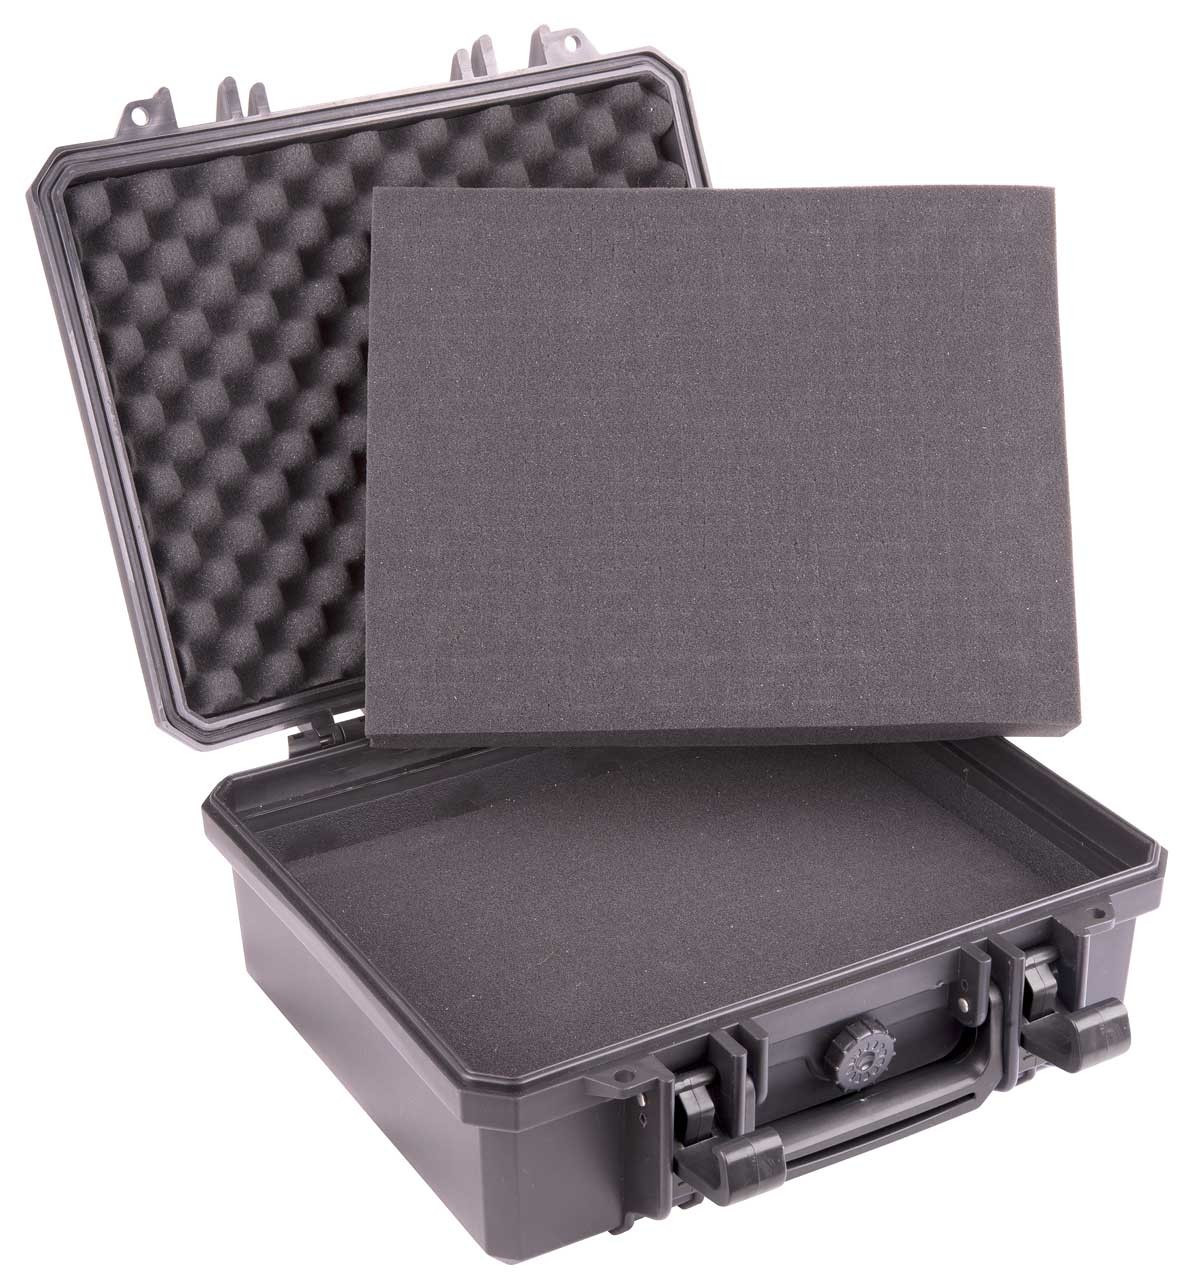 "REED R8888 Deluxe Hard Carrying Case, 12 x 9.6 x 5.4""-REED R8888 6"